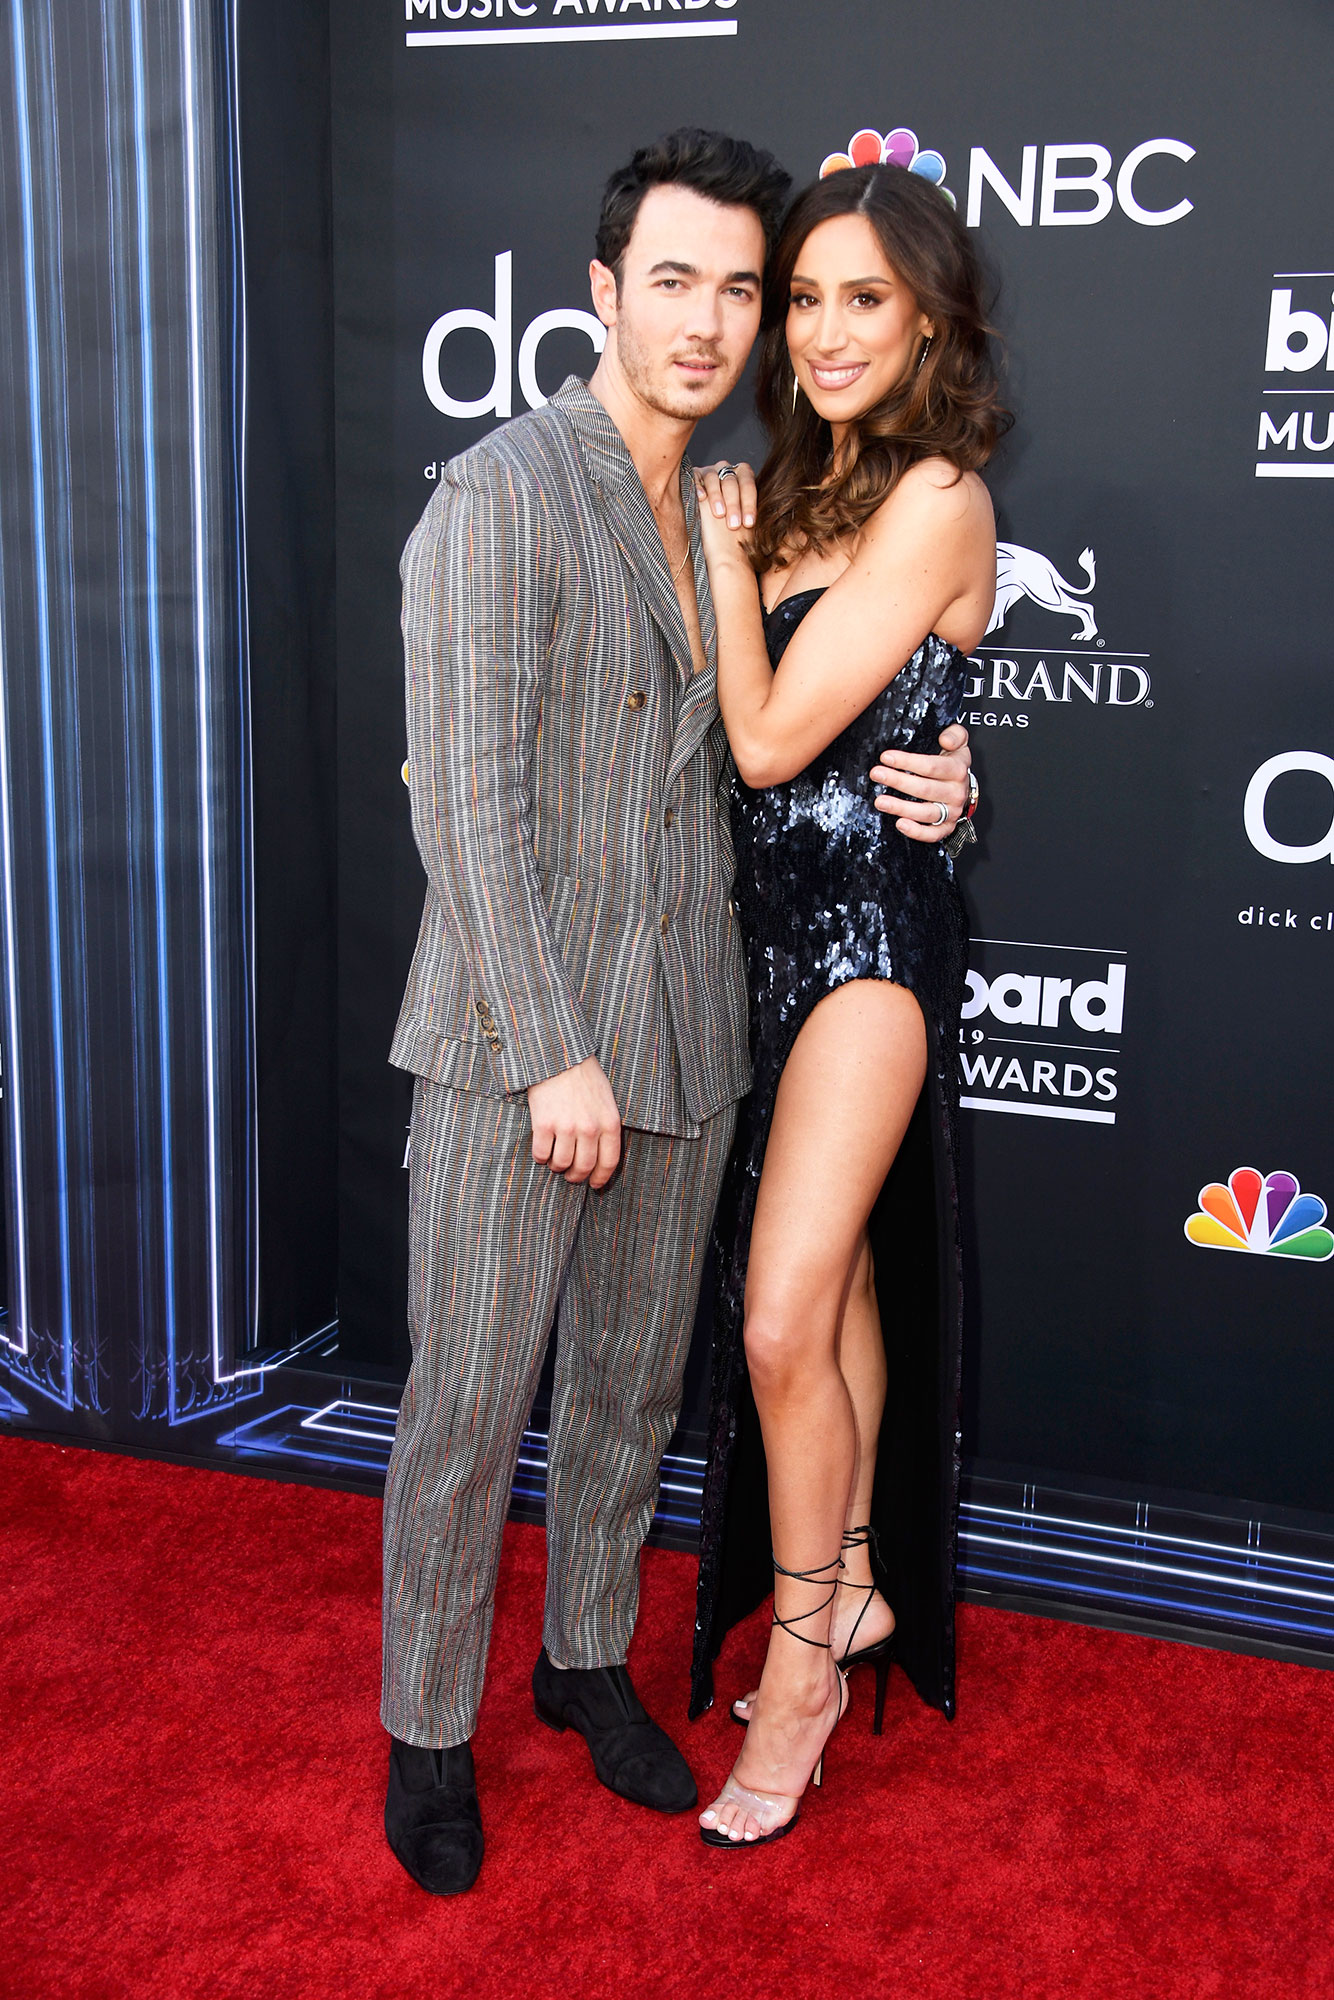 See the Hottest Couples at the BBMAs Kevin Jonas of Jonas Brothers ans Danielle Jonas - The oldest JoBro looked handsome in a striped suit and his wife shimmered in a sequined gown with a thigh-high slit.